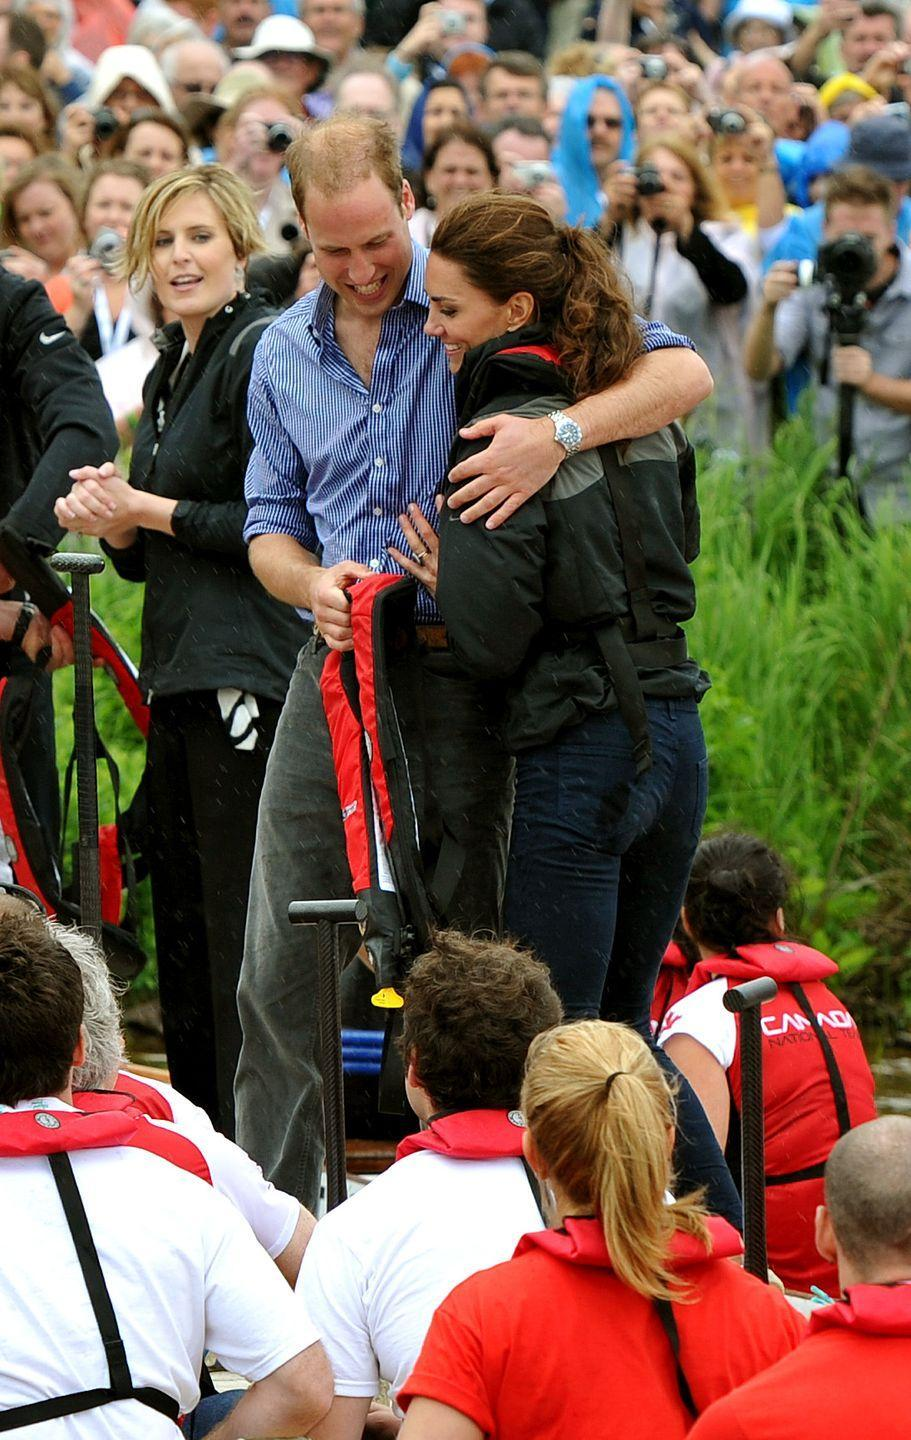 <p>Prince William sweetly snuggled Kate after the team he rowed in won a boat race, in which they competed against each other in Canada. This photo was taken during their first royal tour together in 2011 as newlyweds.</p>